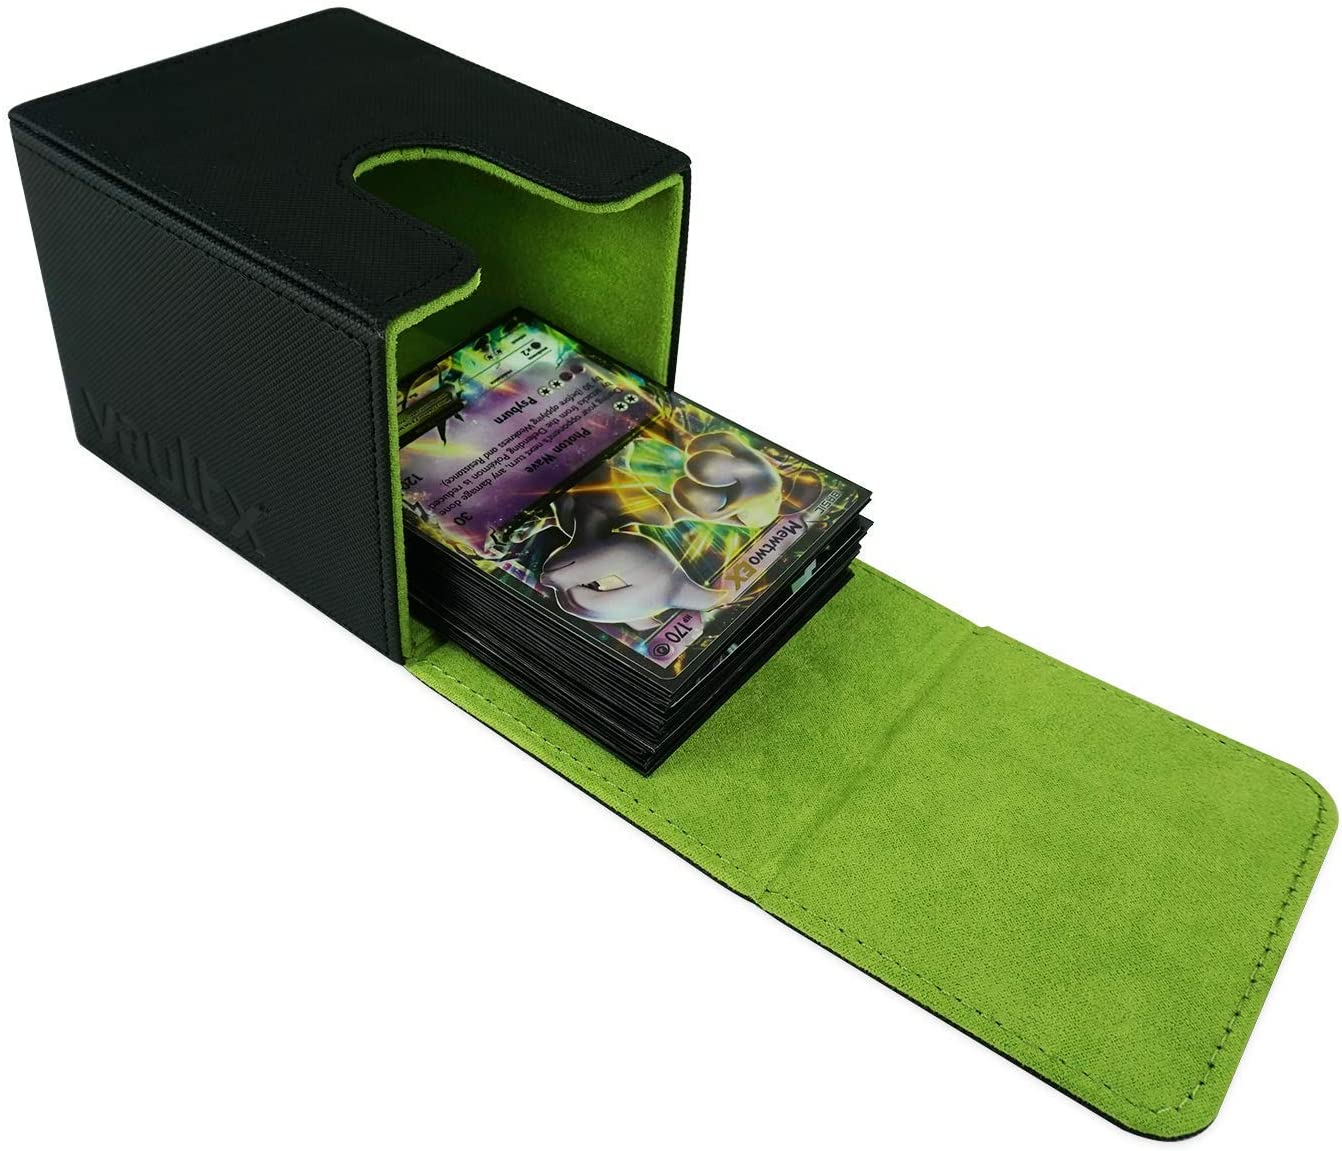 Vault X Deck Box and 150 Black Card Sleeves Yellow Large Size for 120-130 Sleeved Cards PVC Free Card Holder for TCG